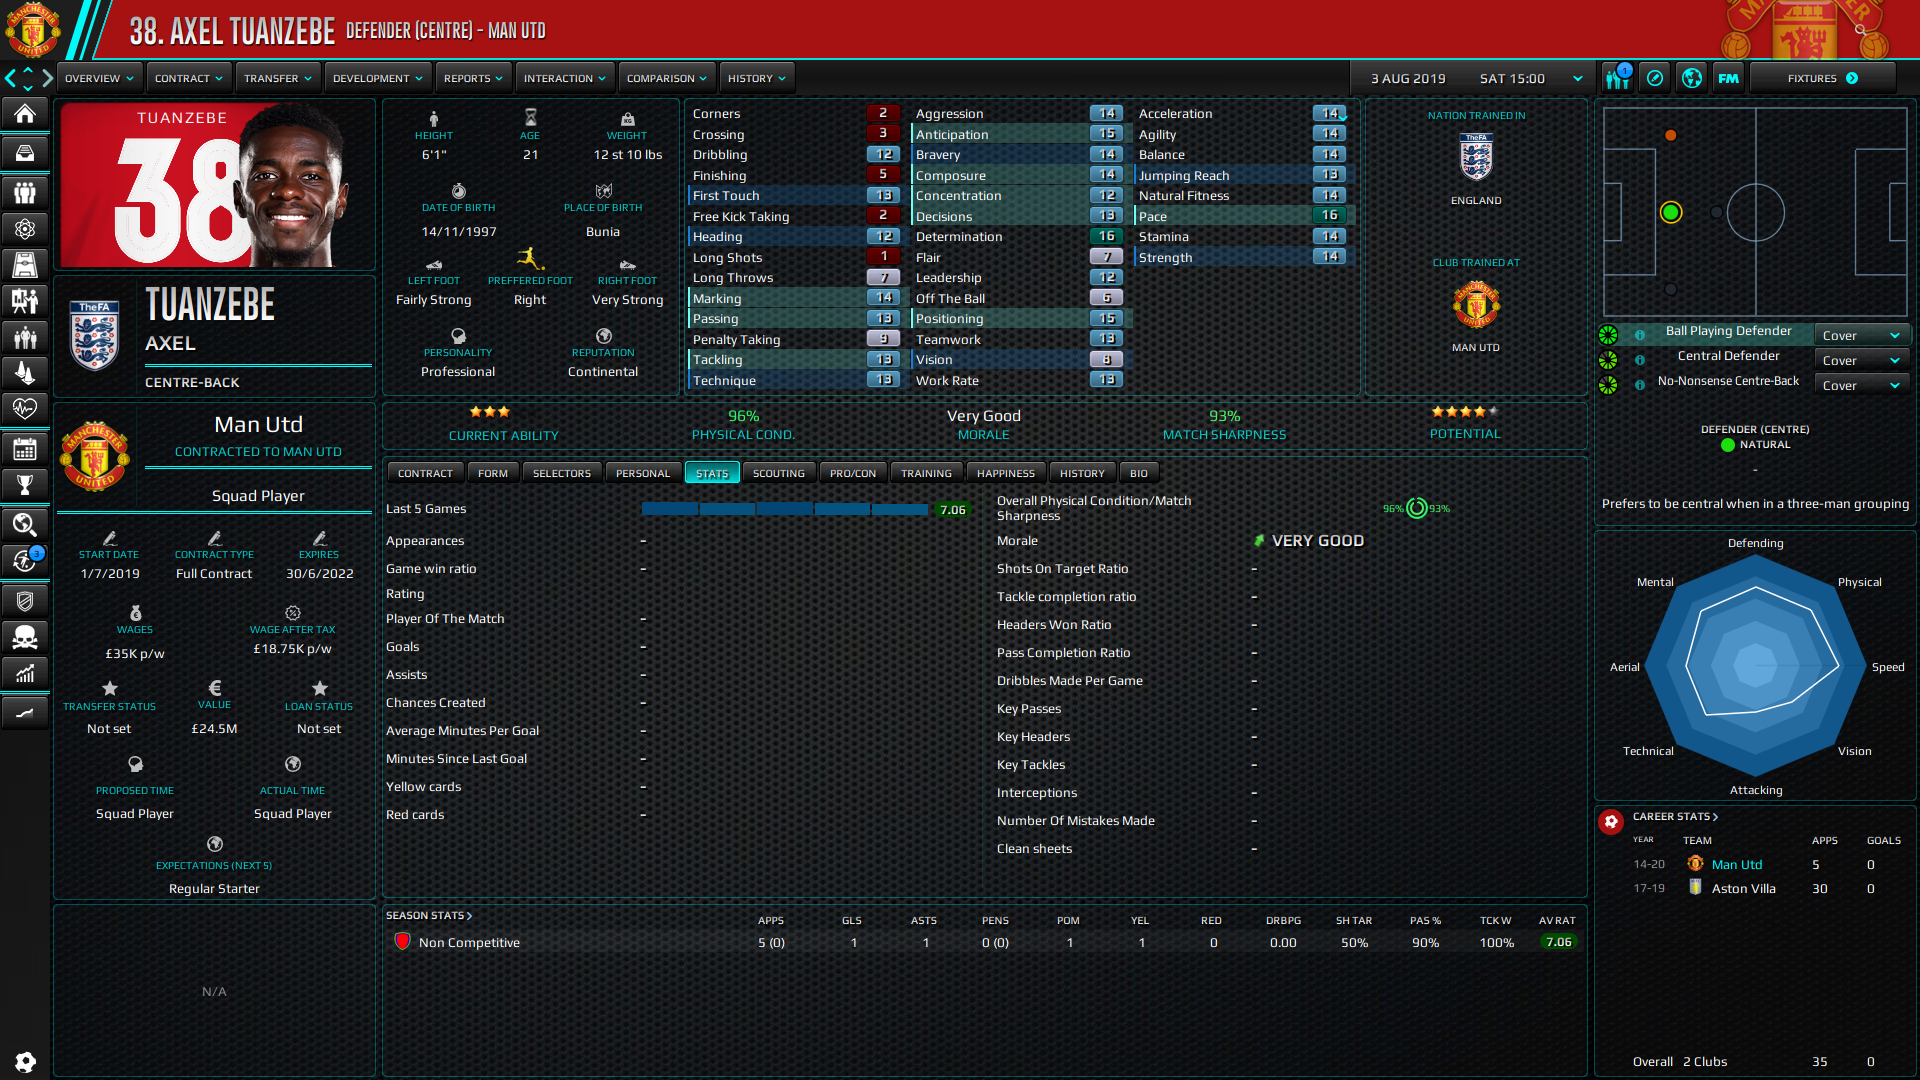 Football Manager 2020 27_07_2020 19_28_56.png